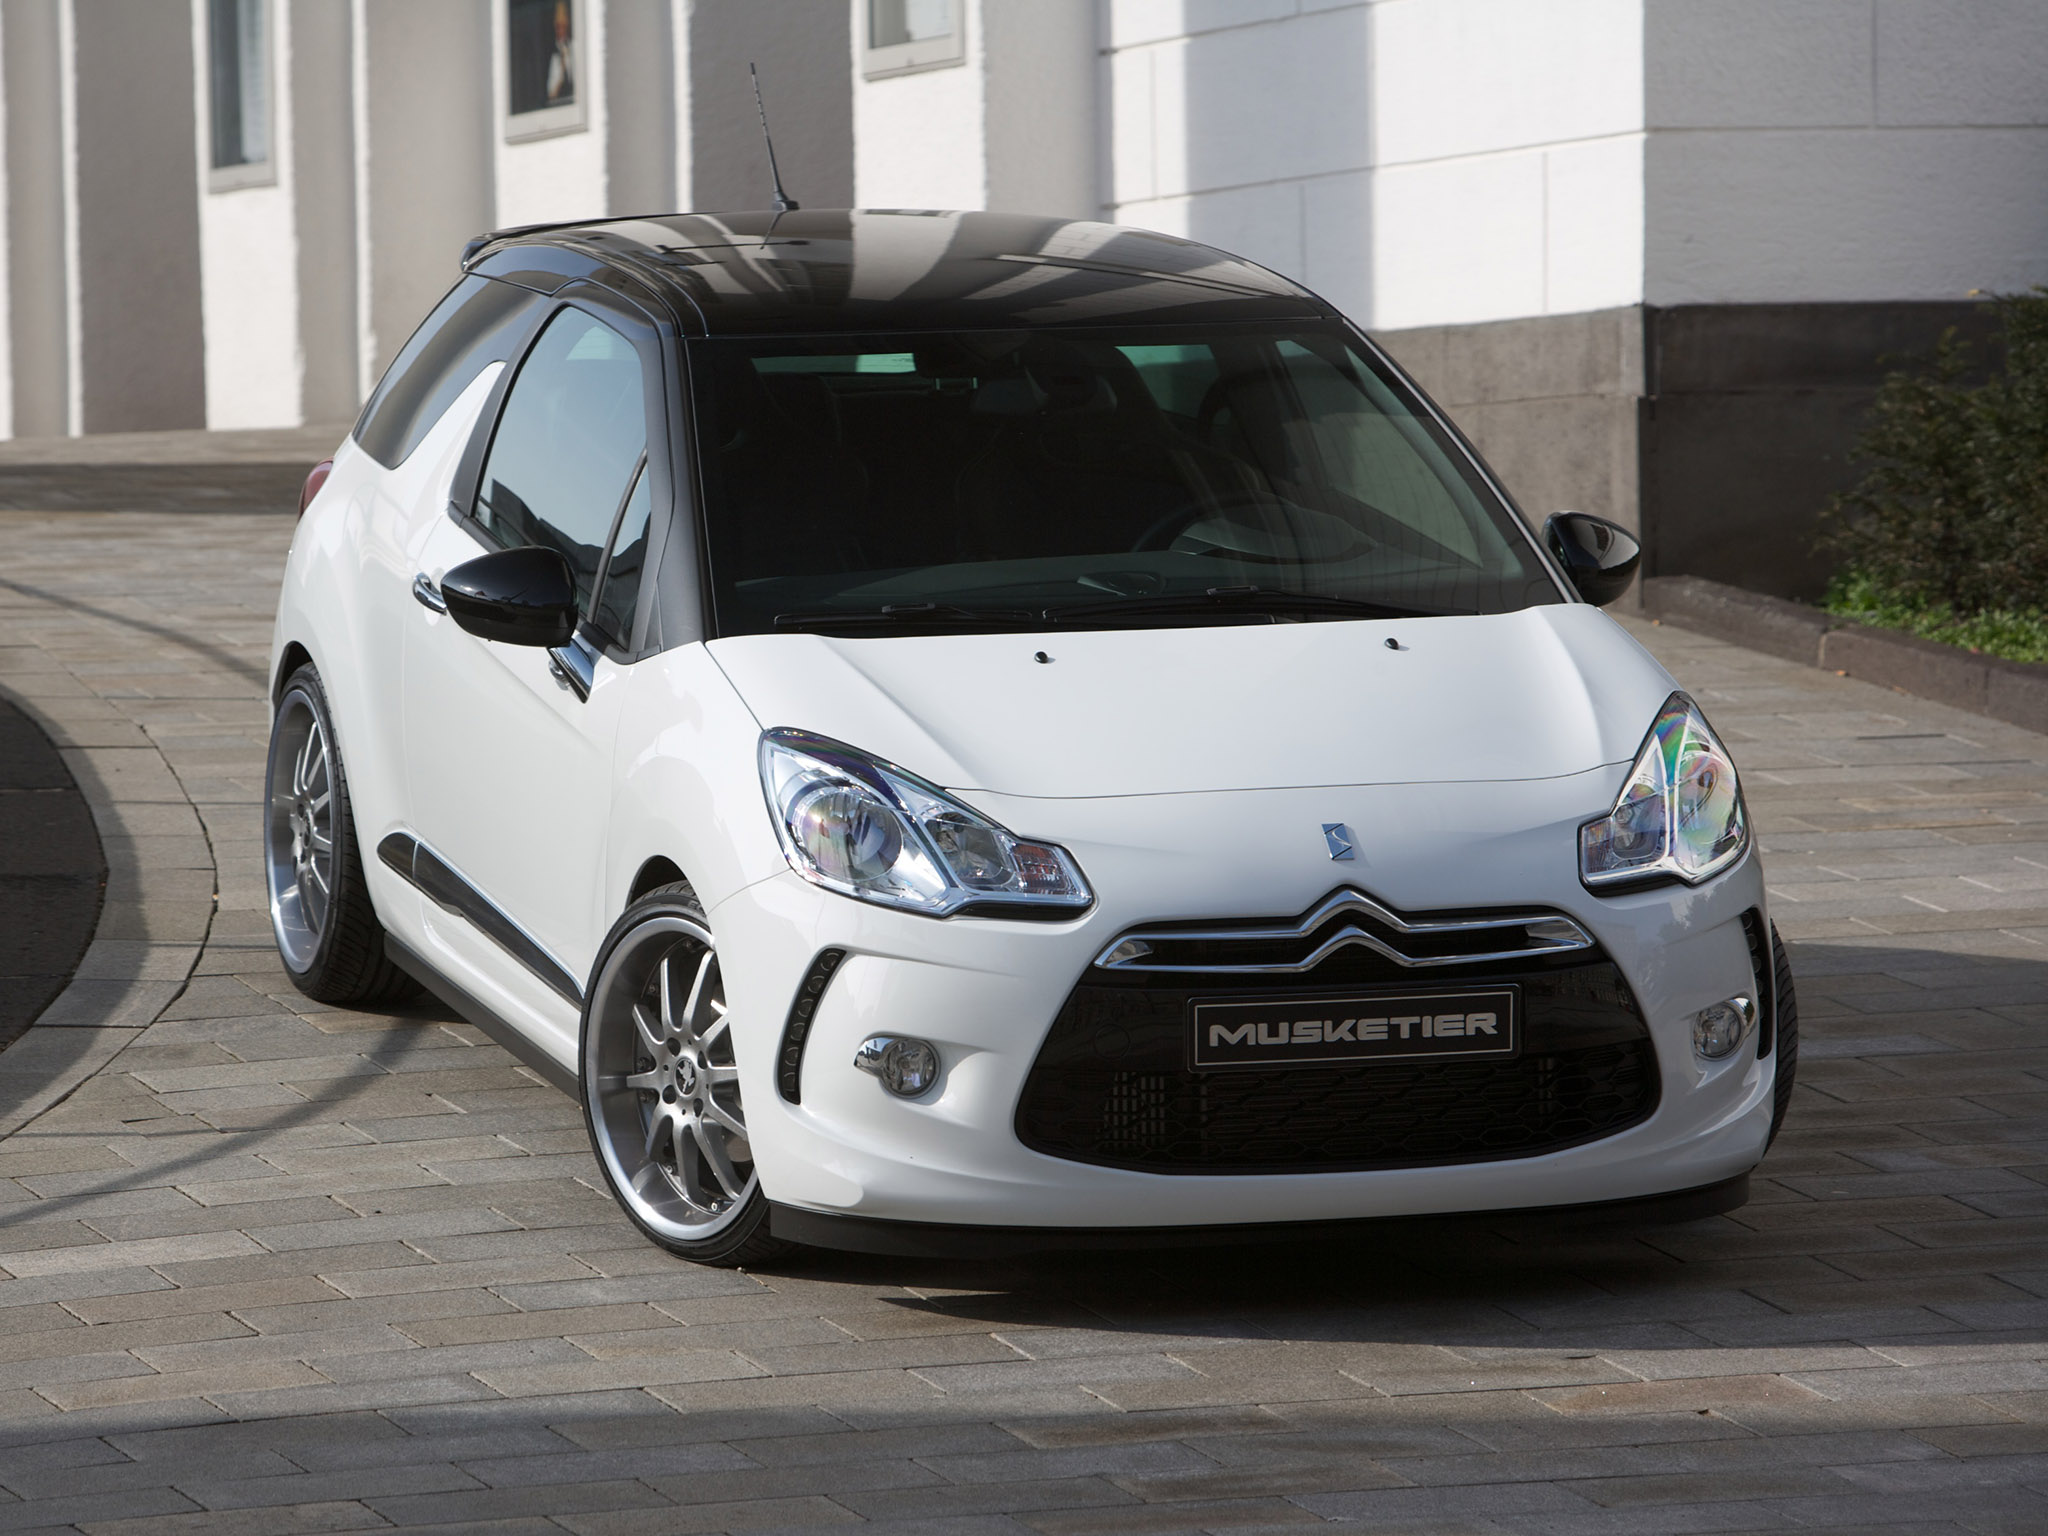 musketier citroen ds3 2010 musketier citroen ds3 2010 photo 16 car in pictures car photo gallery. Black Bedroom Furniture Sets. Home Design Ideas